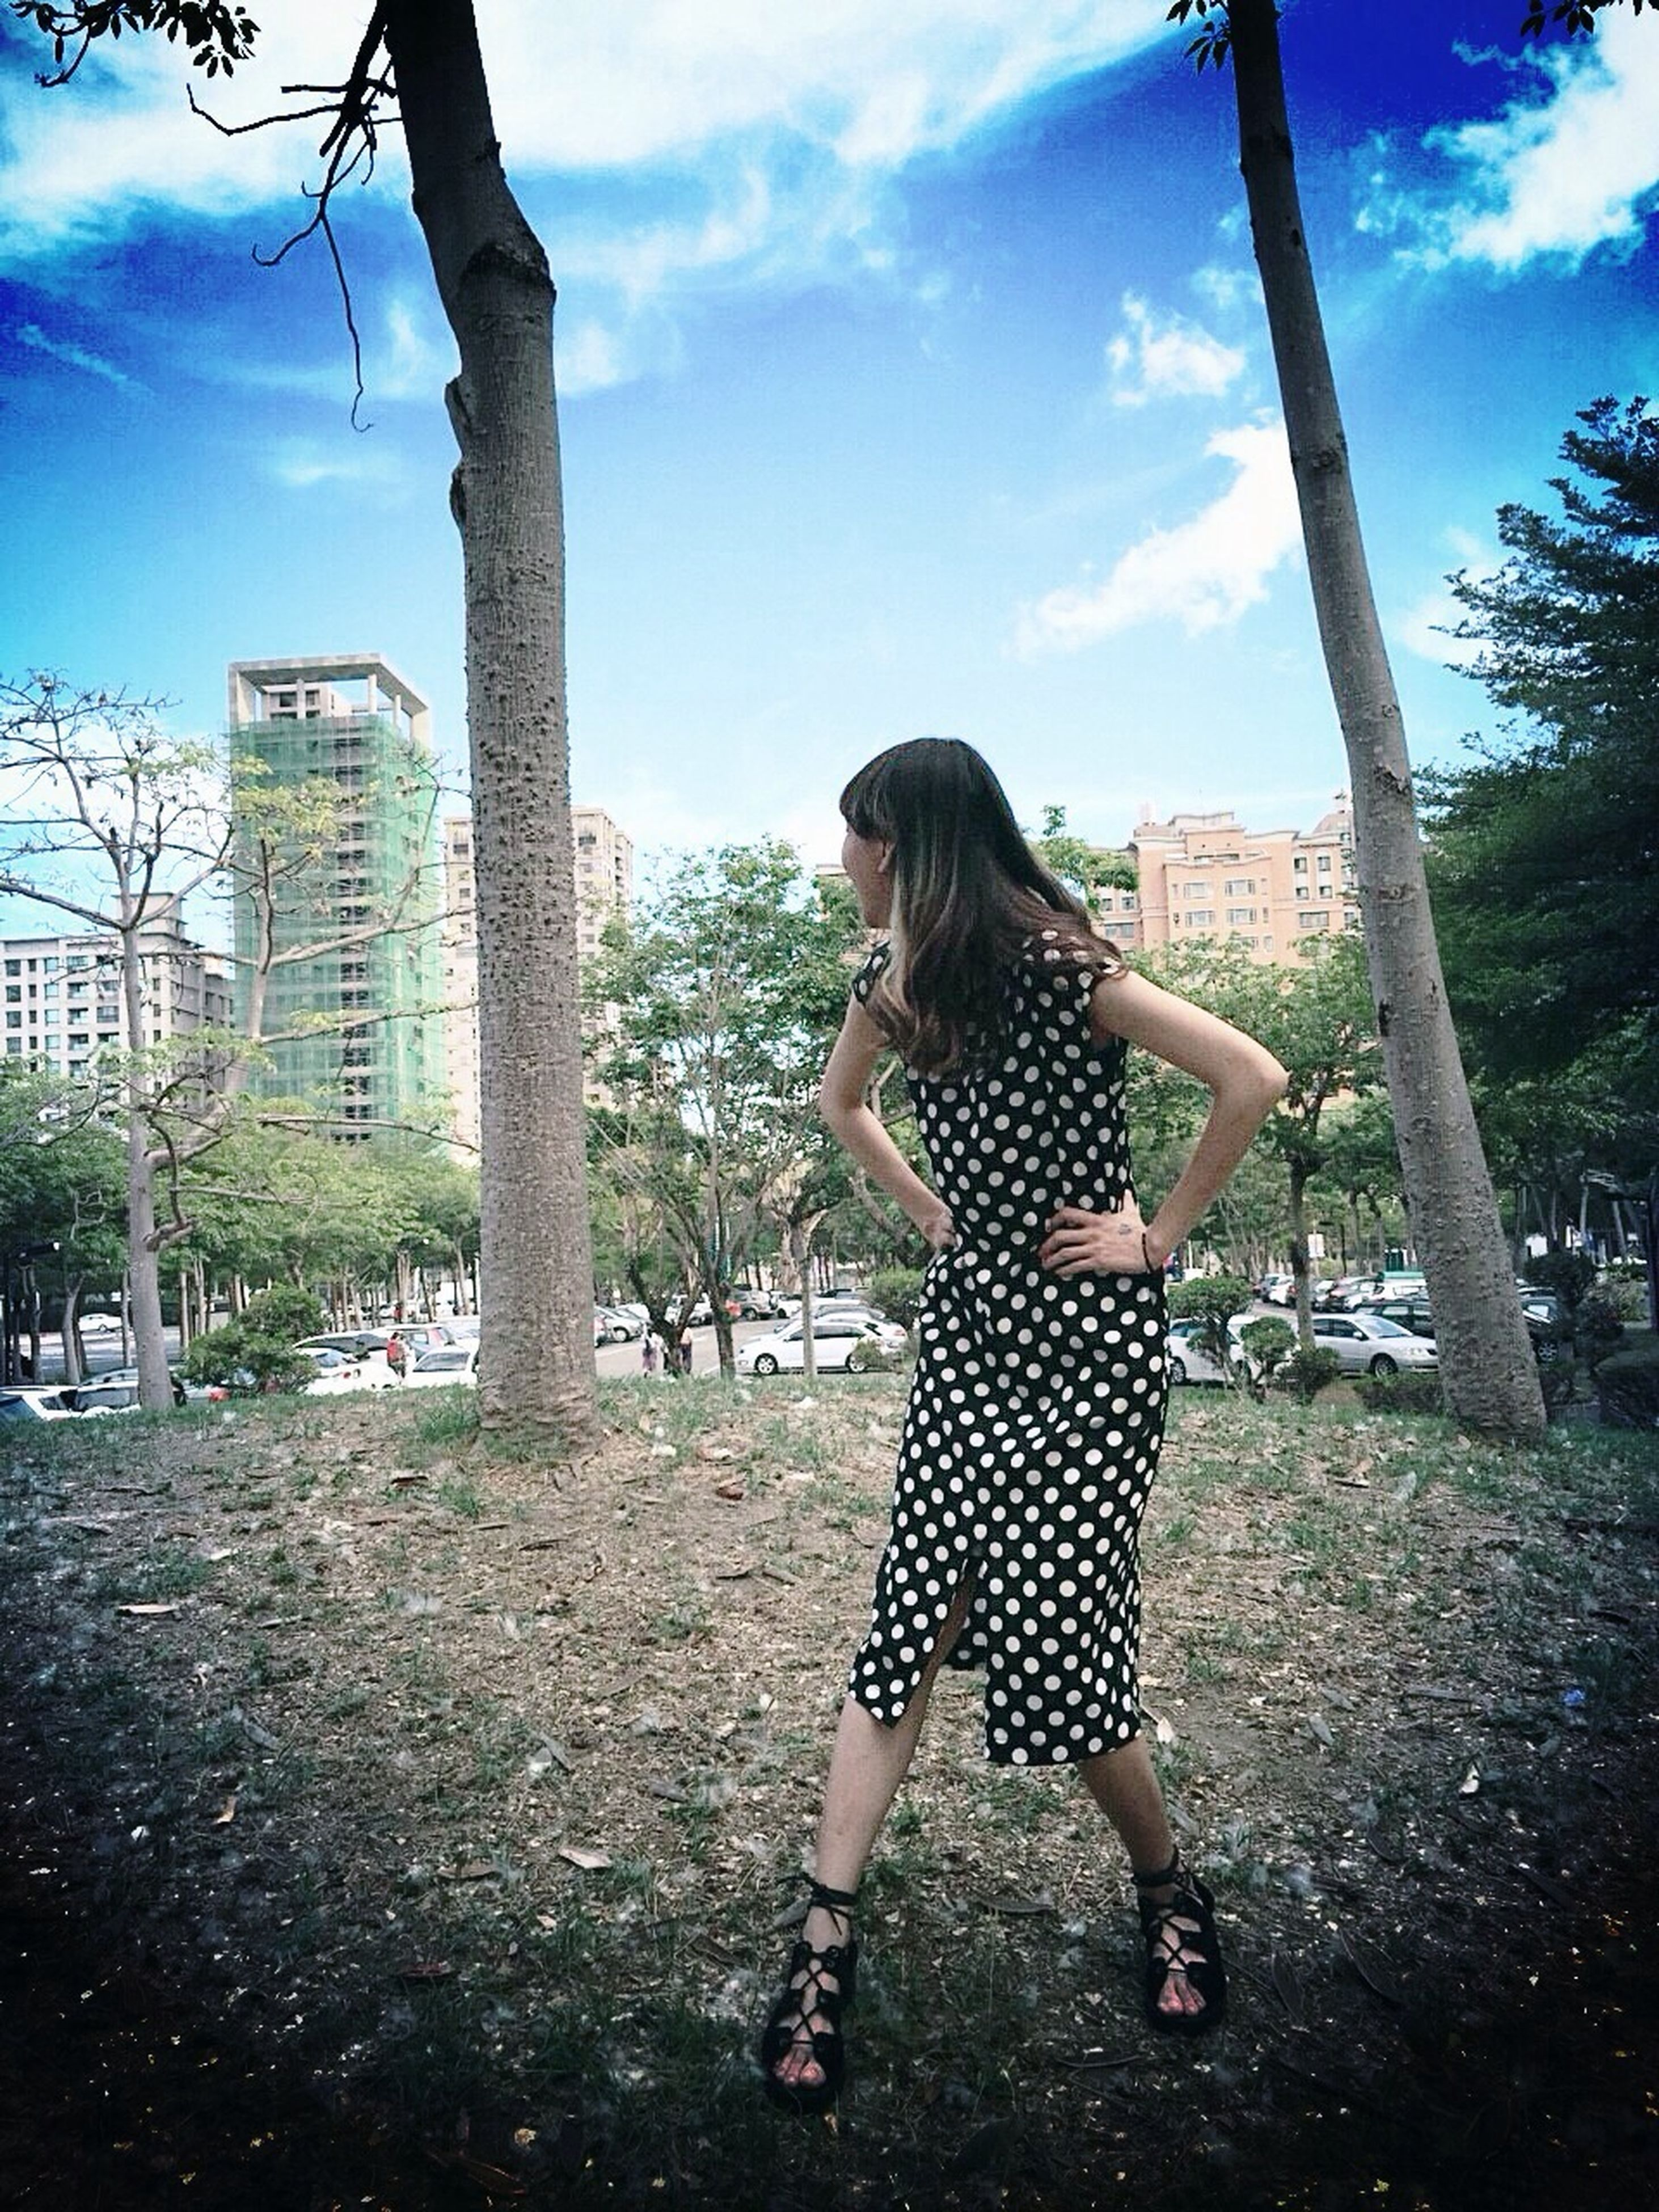 tree, lifestyles, full length, leisure activity, casual clothing, person, sky, young adult, young women, standing, tree trunk, long hair, childhood, sunlight, three quarter length, girls, park - man made space